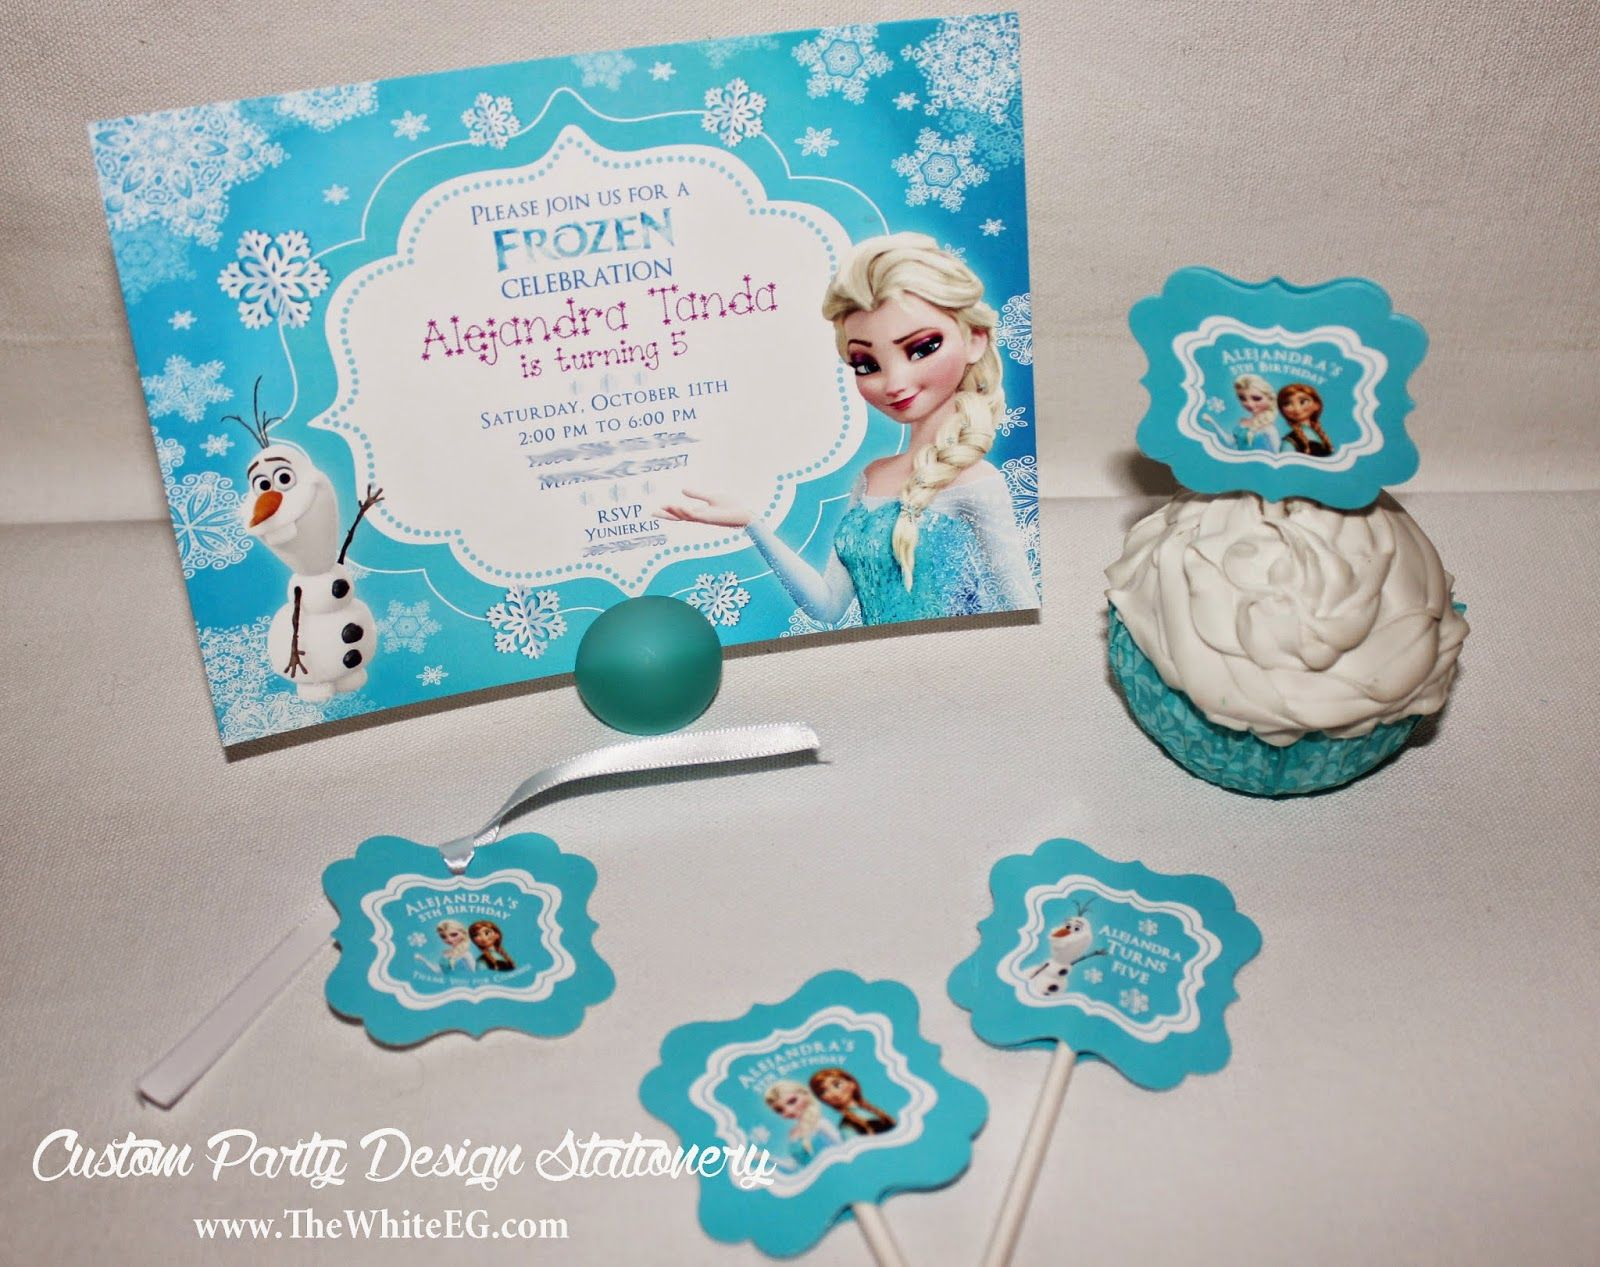 DISNEYs FROZEN Theme Birthday Party Ideas FREE Printable Thank You